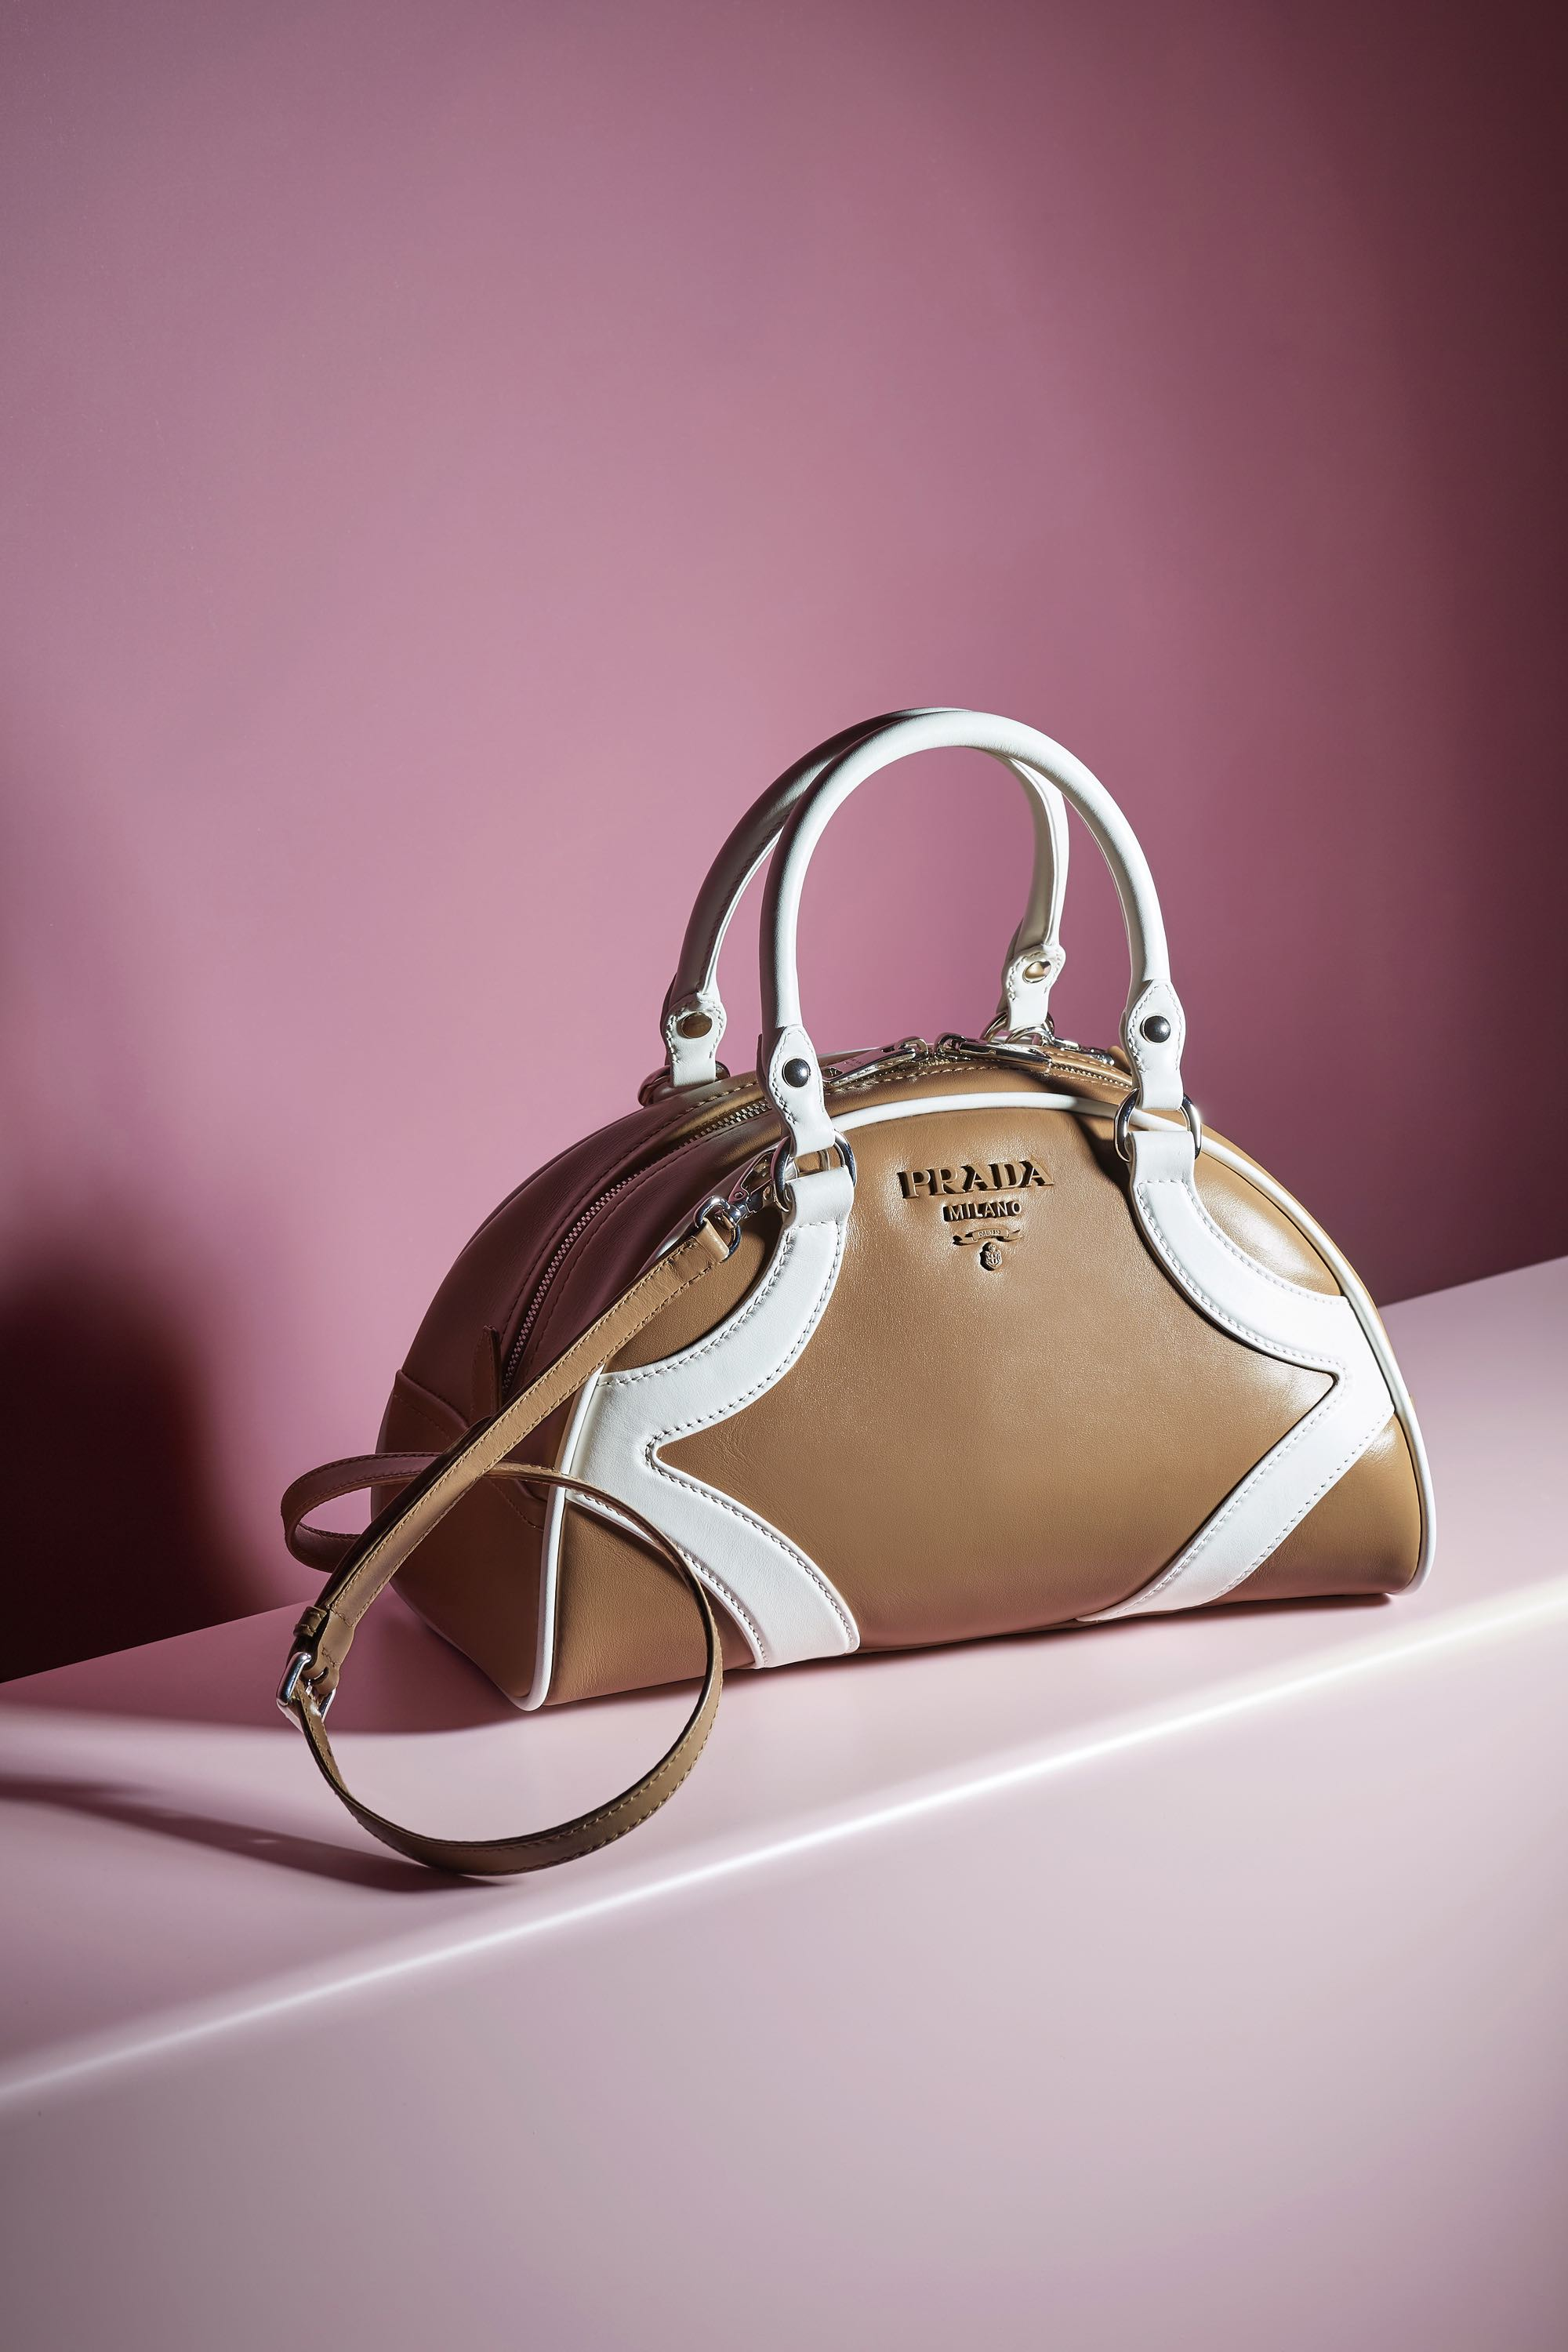 tan and white prada bowling bag resort 2020 collection